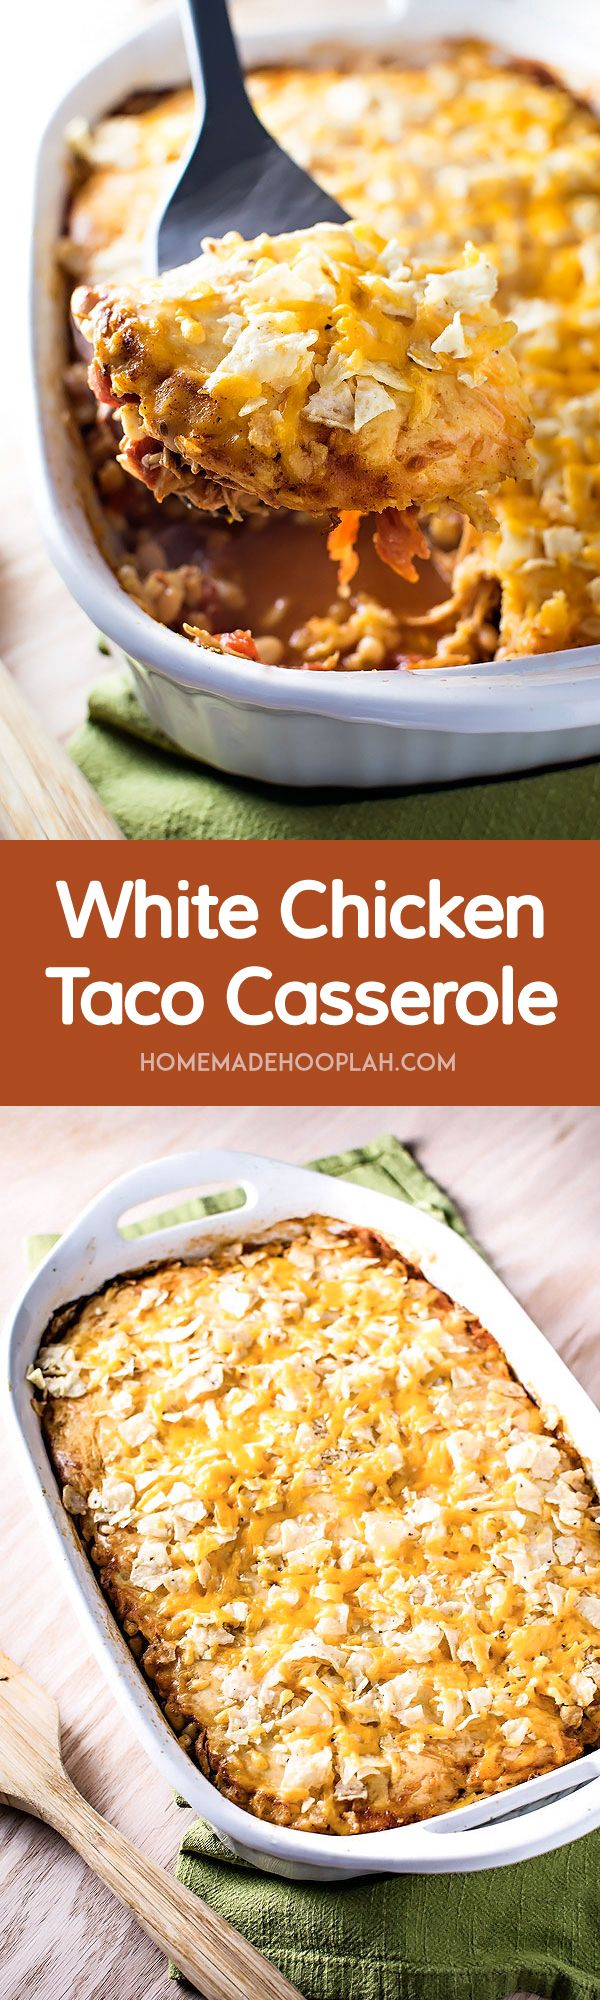 White Chicken Taco Casserole! All the deliciousness of chicken tacos, but made the easy way - assembled in 15 minutes and baked in a dish.   HomemadeHooplah.com